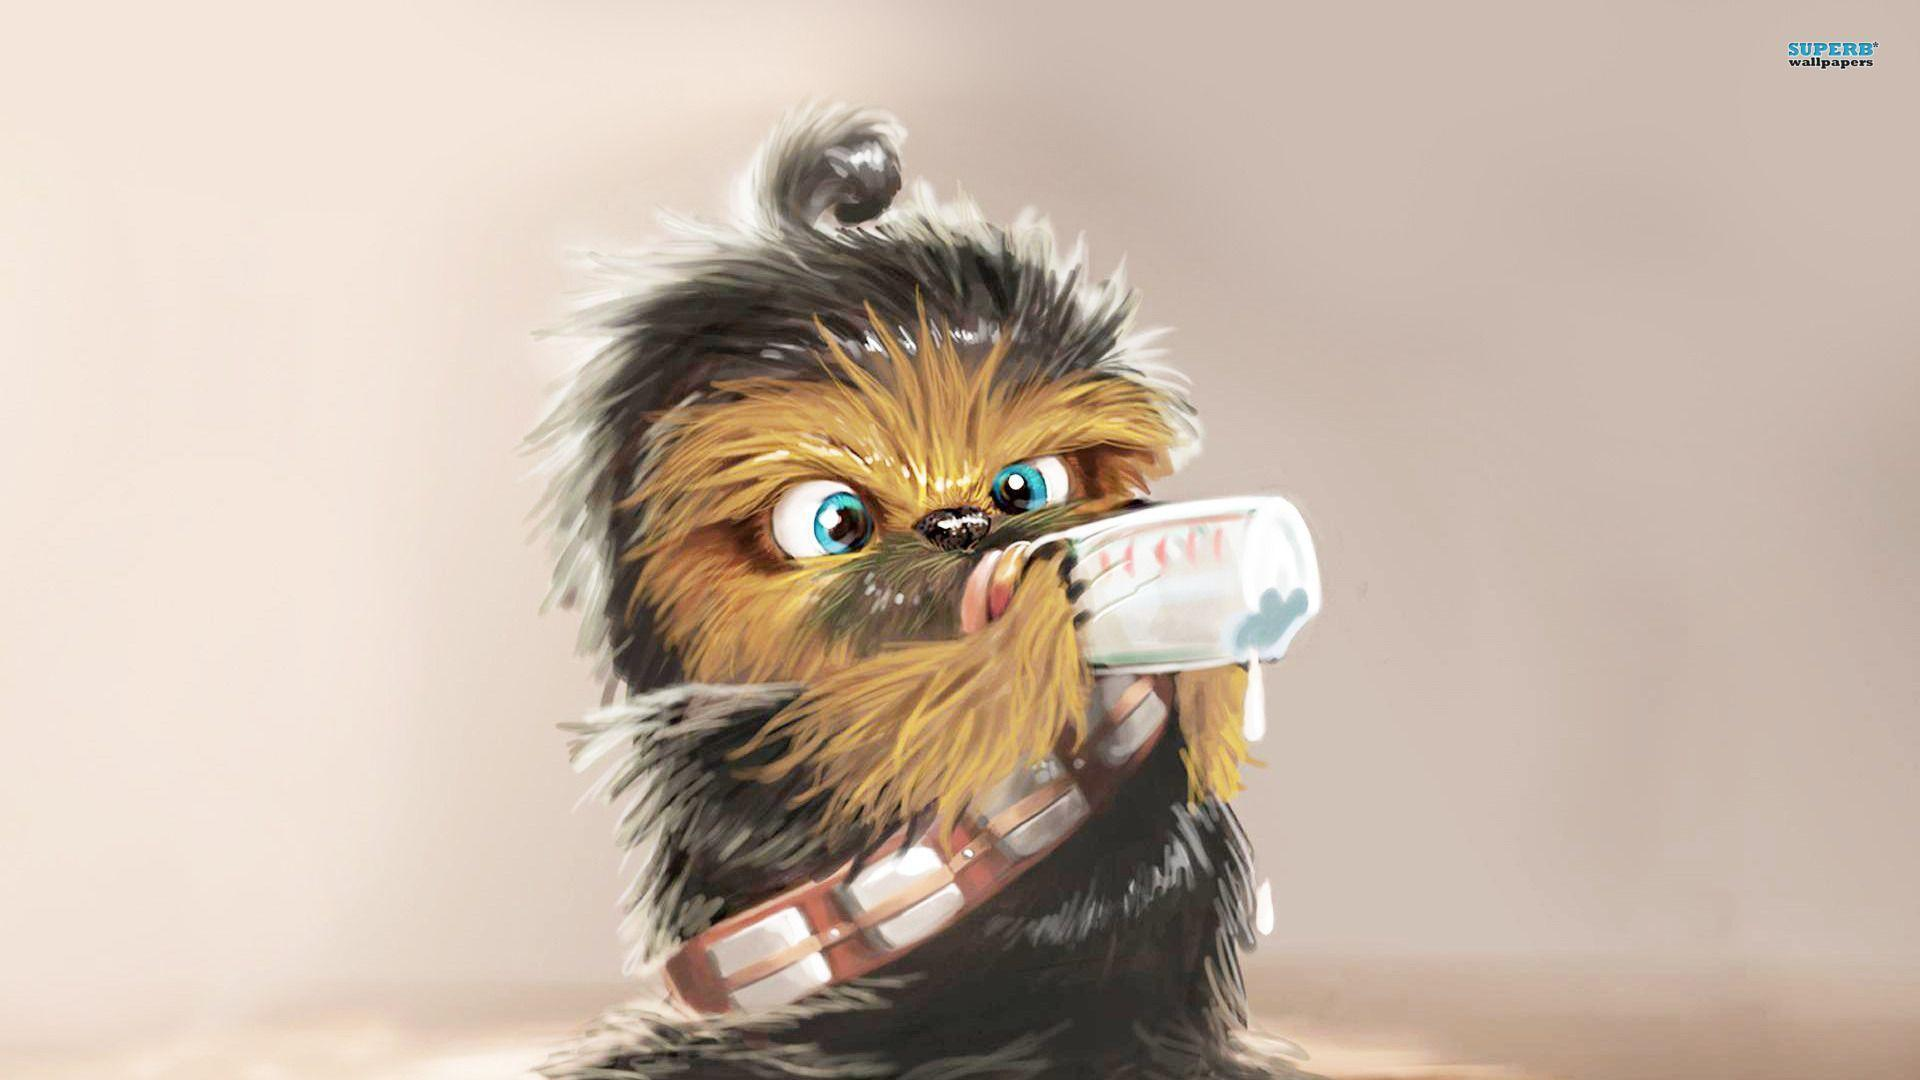 Chewbacca Wallpapers Wallpaper Cave